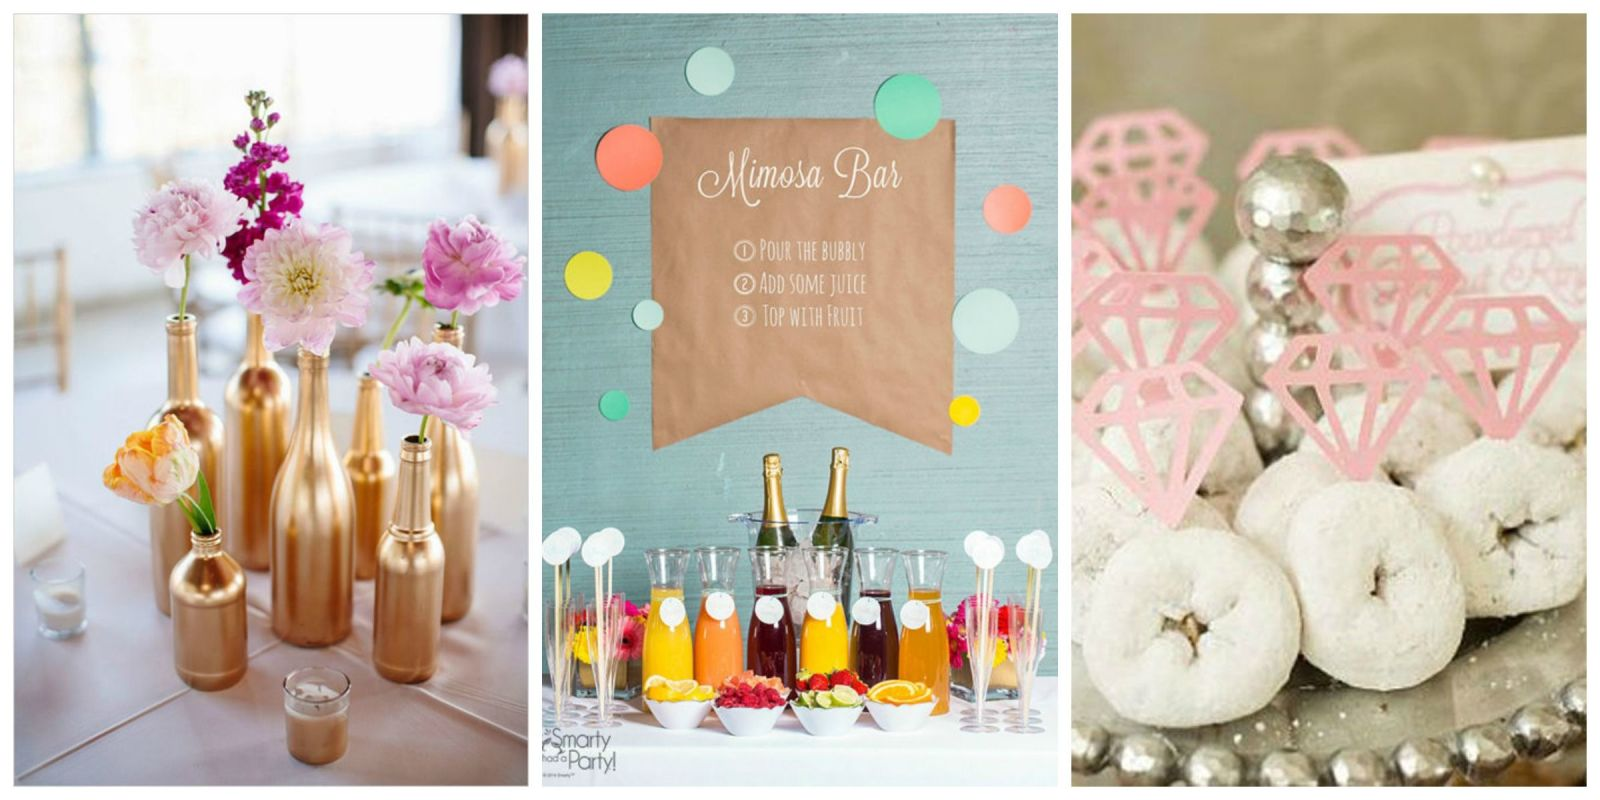 51 Bridal Shower Ideas  Fun Bridal Shower Themes